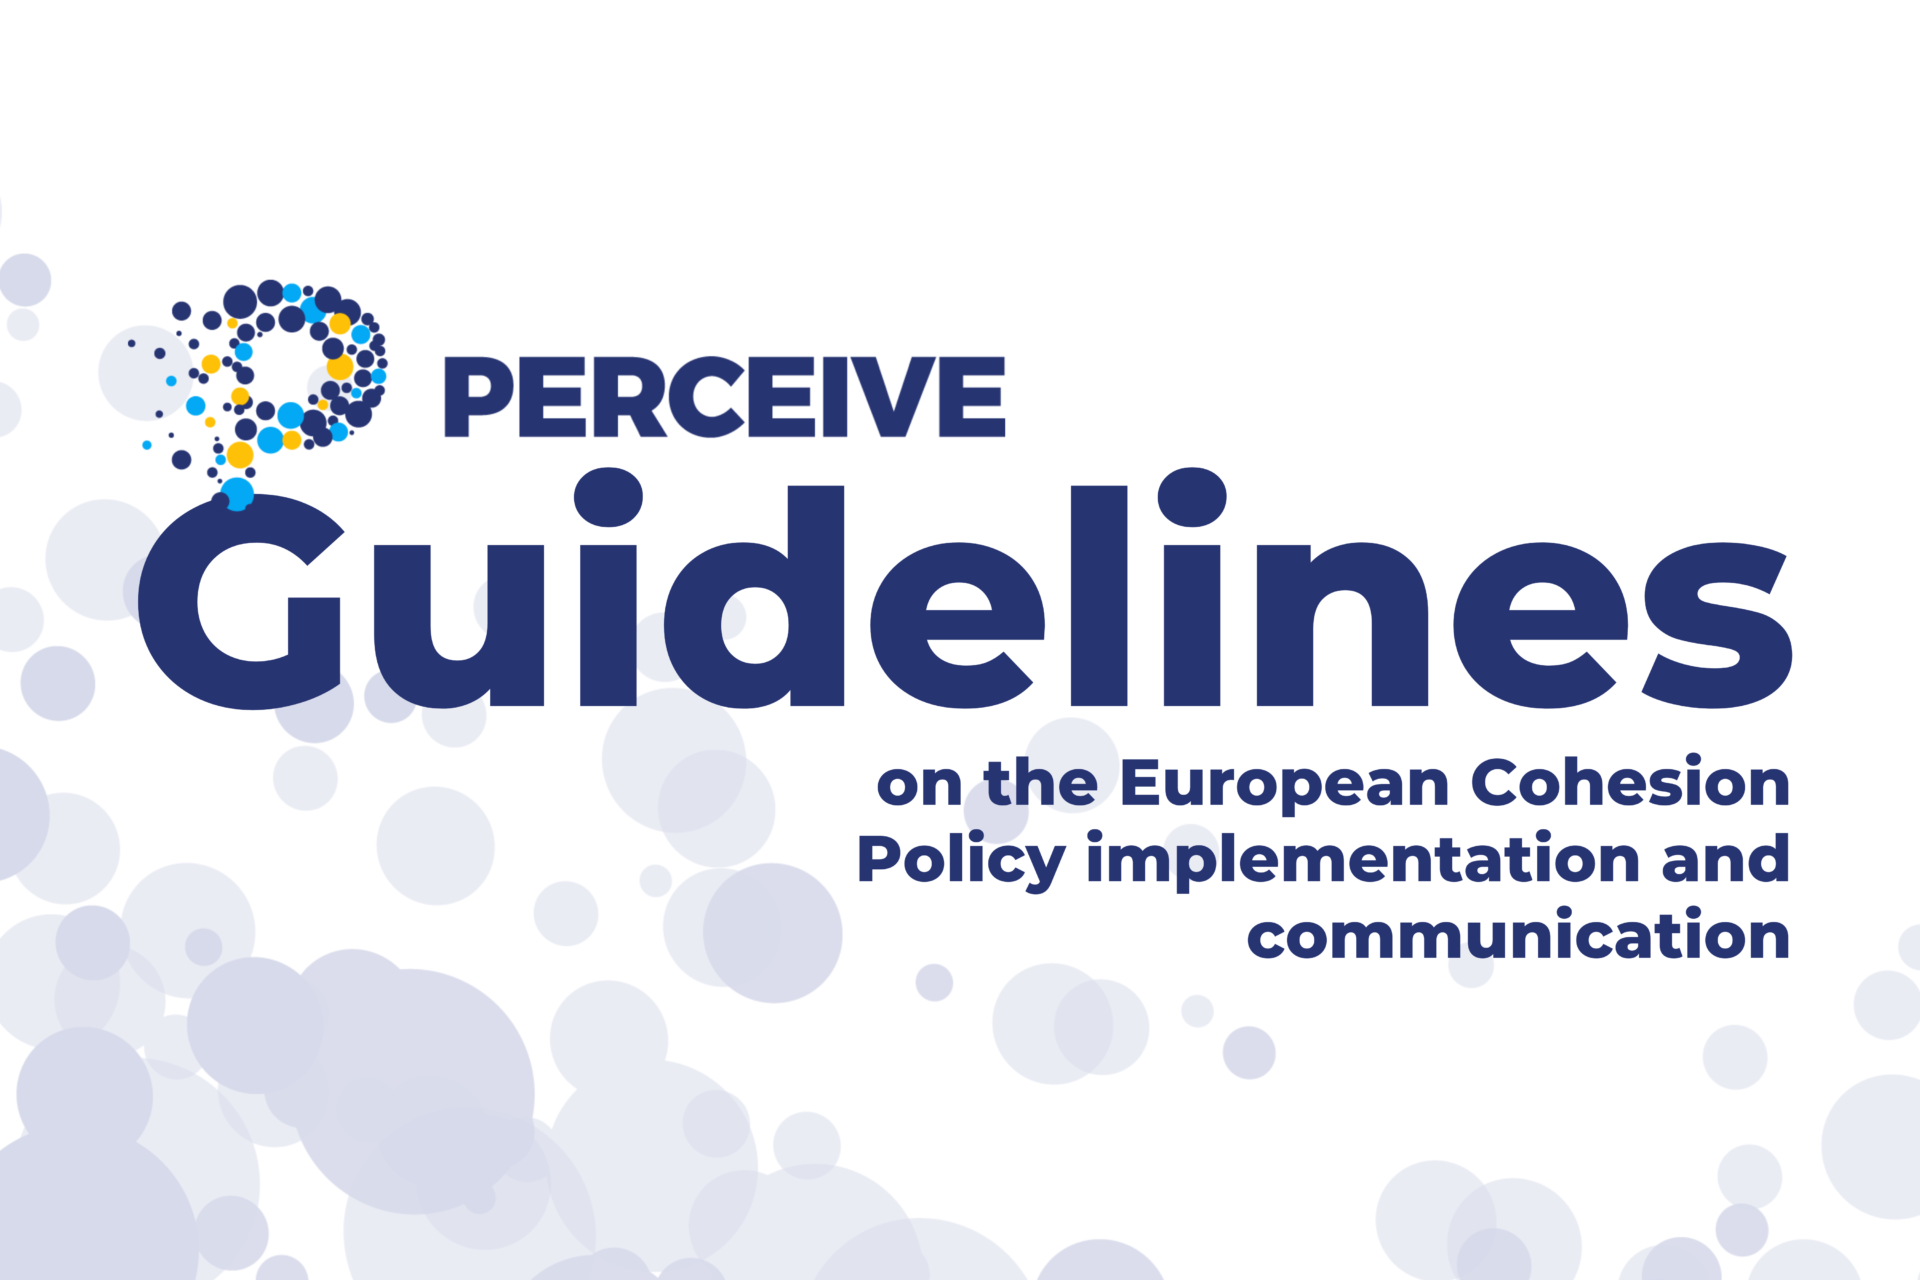 PERCEIVE Guidelines